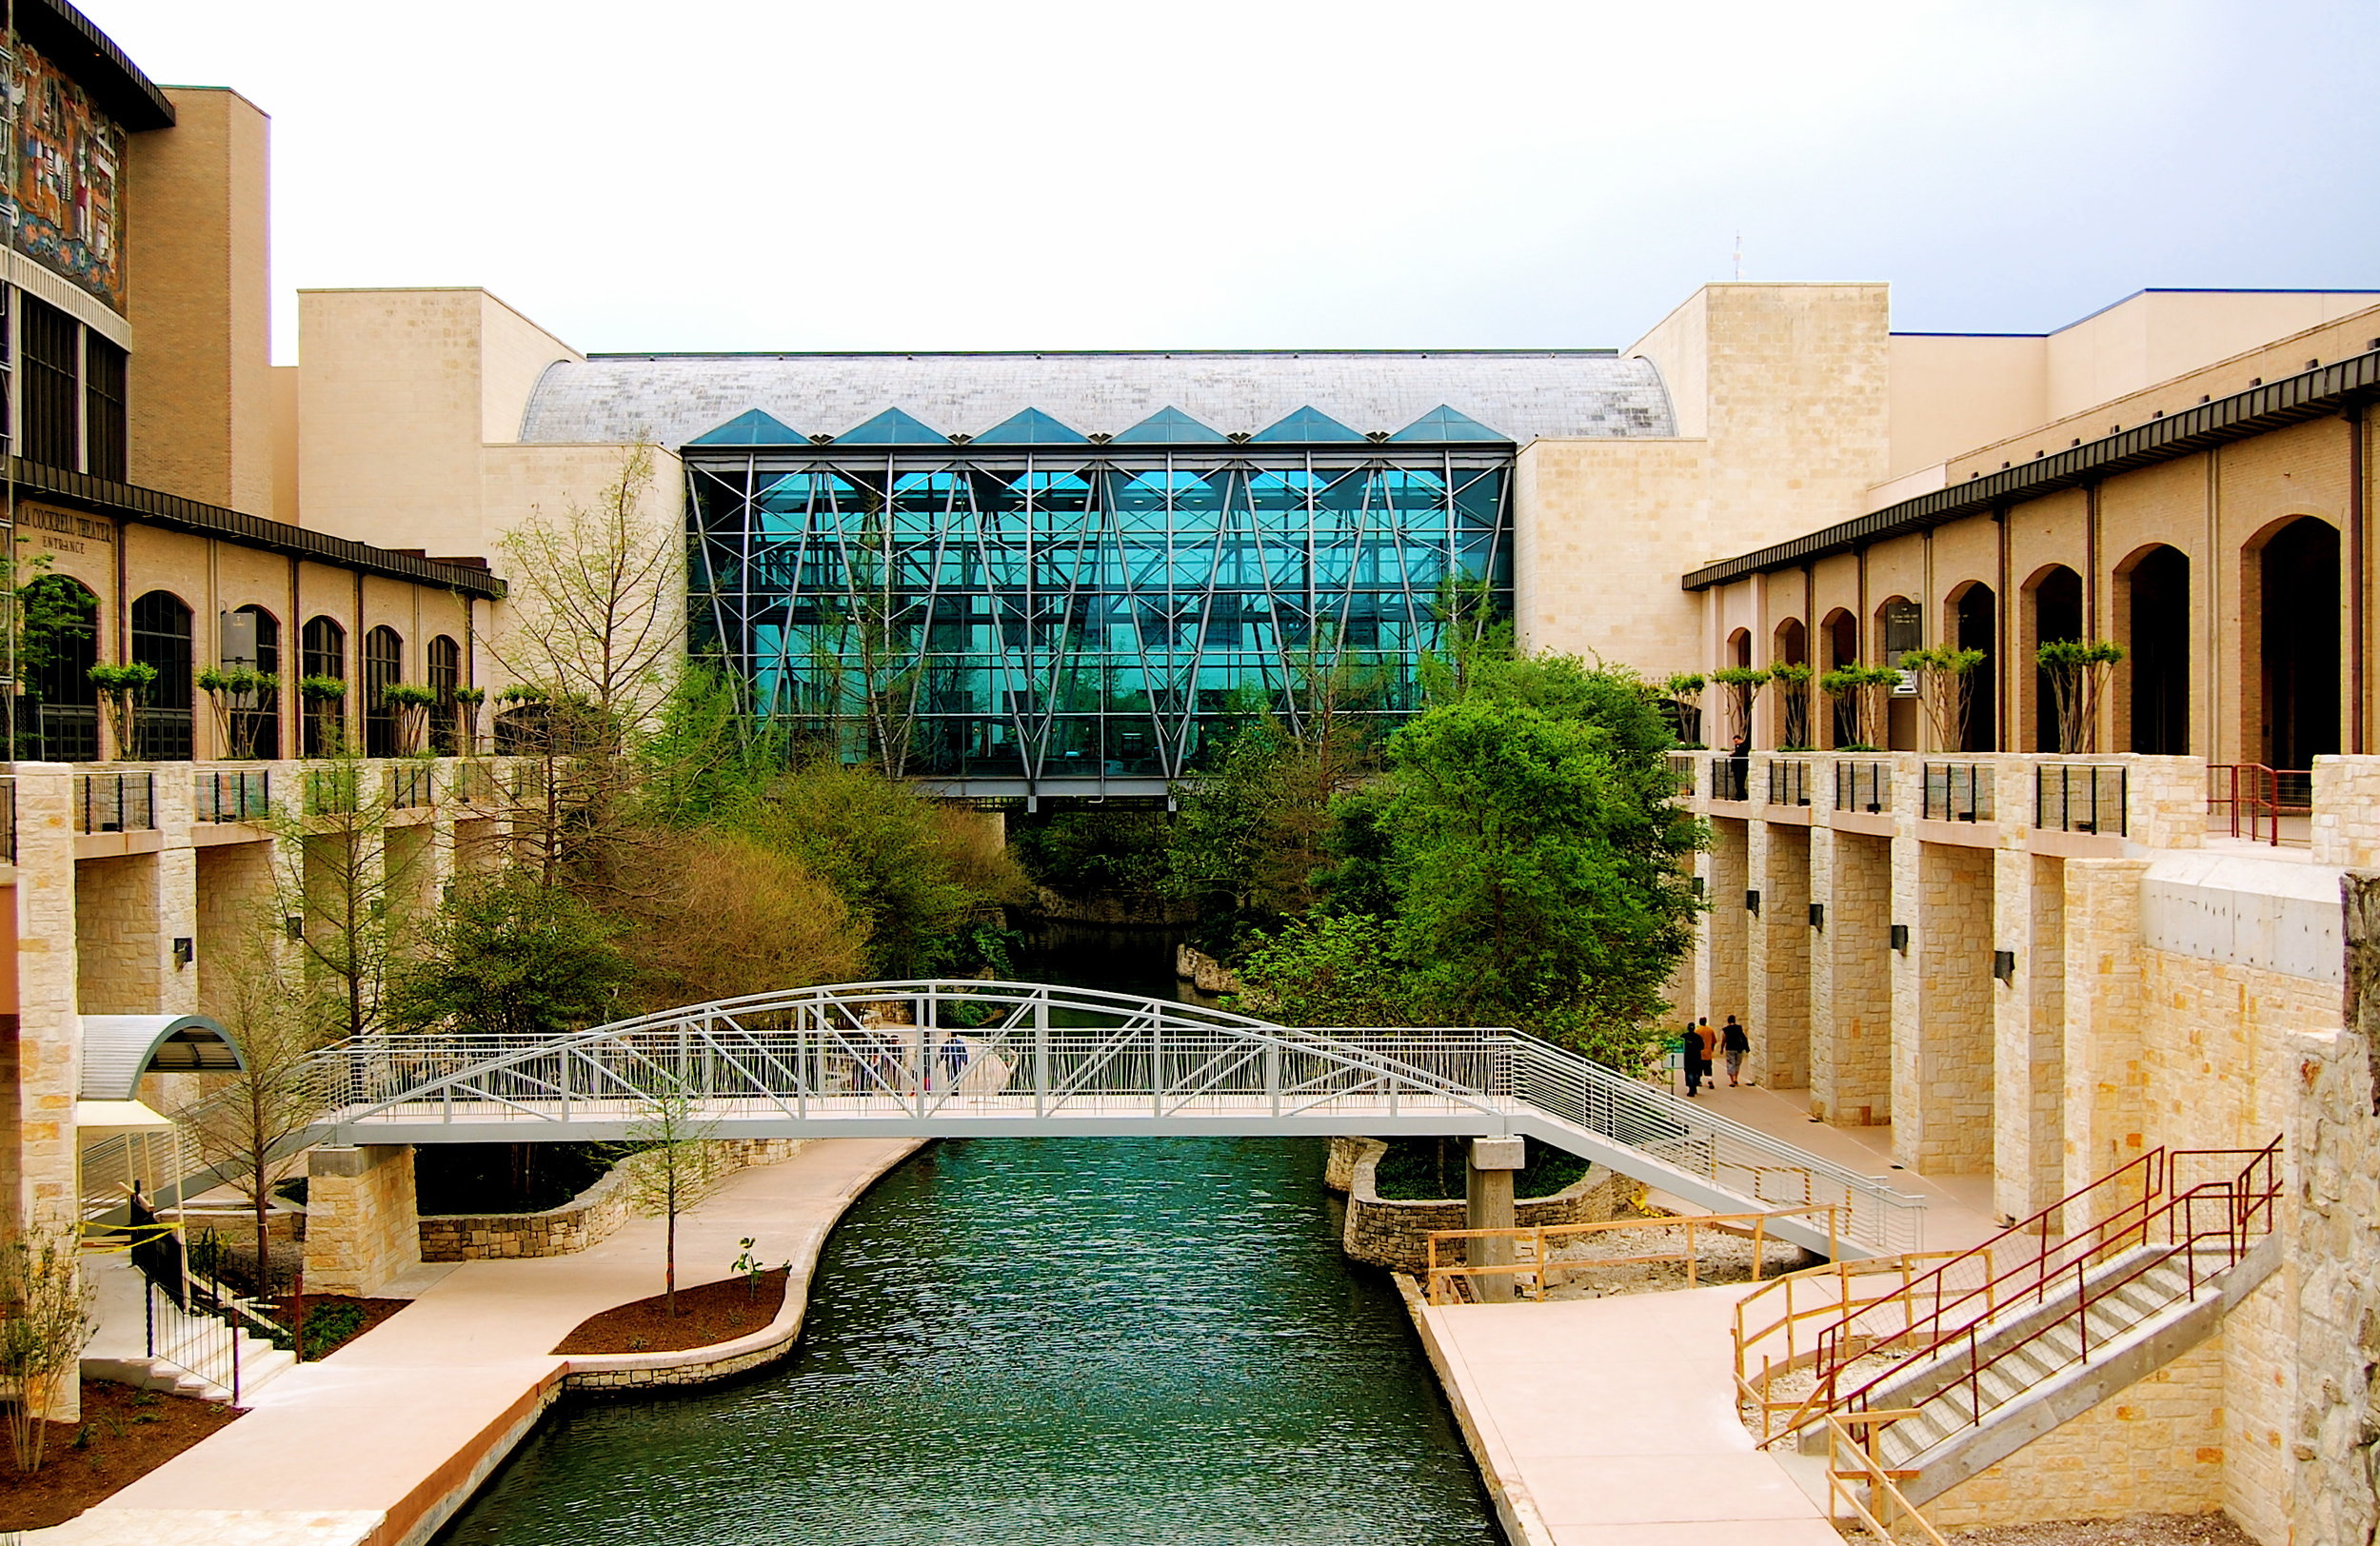 Riverwalk / Henry B. Gonzalez Convention Center